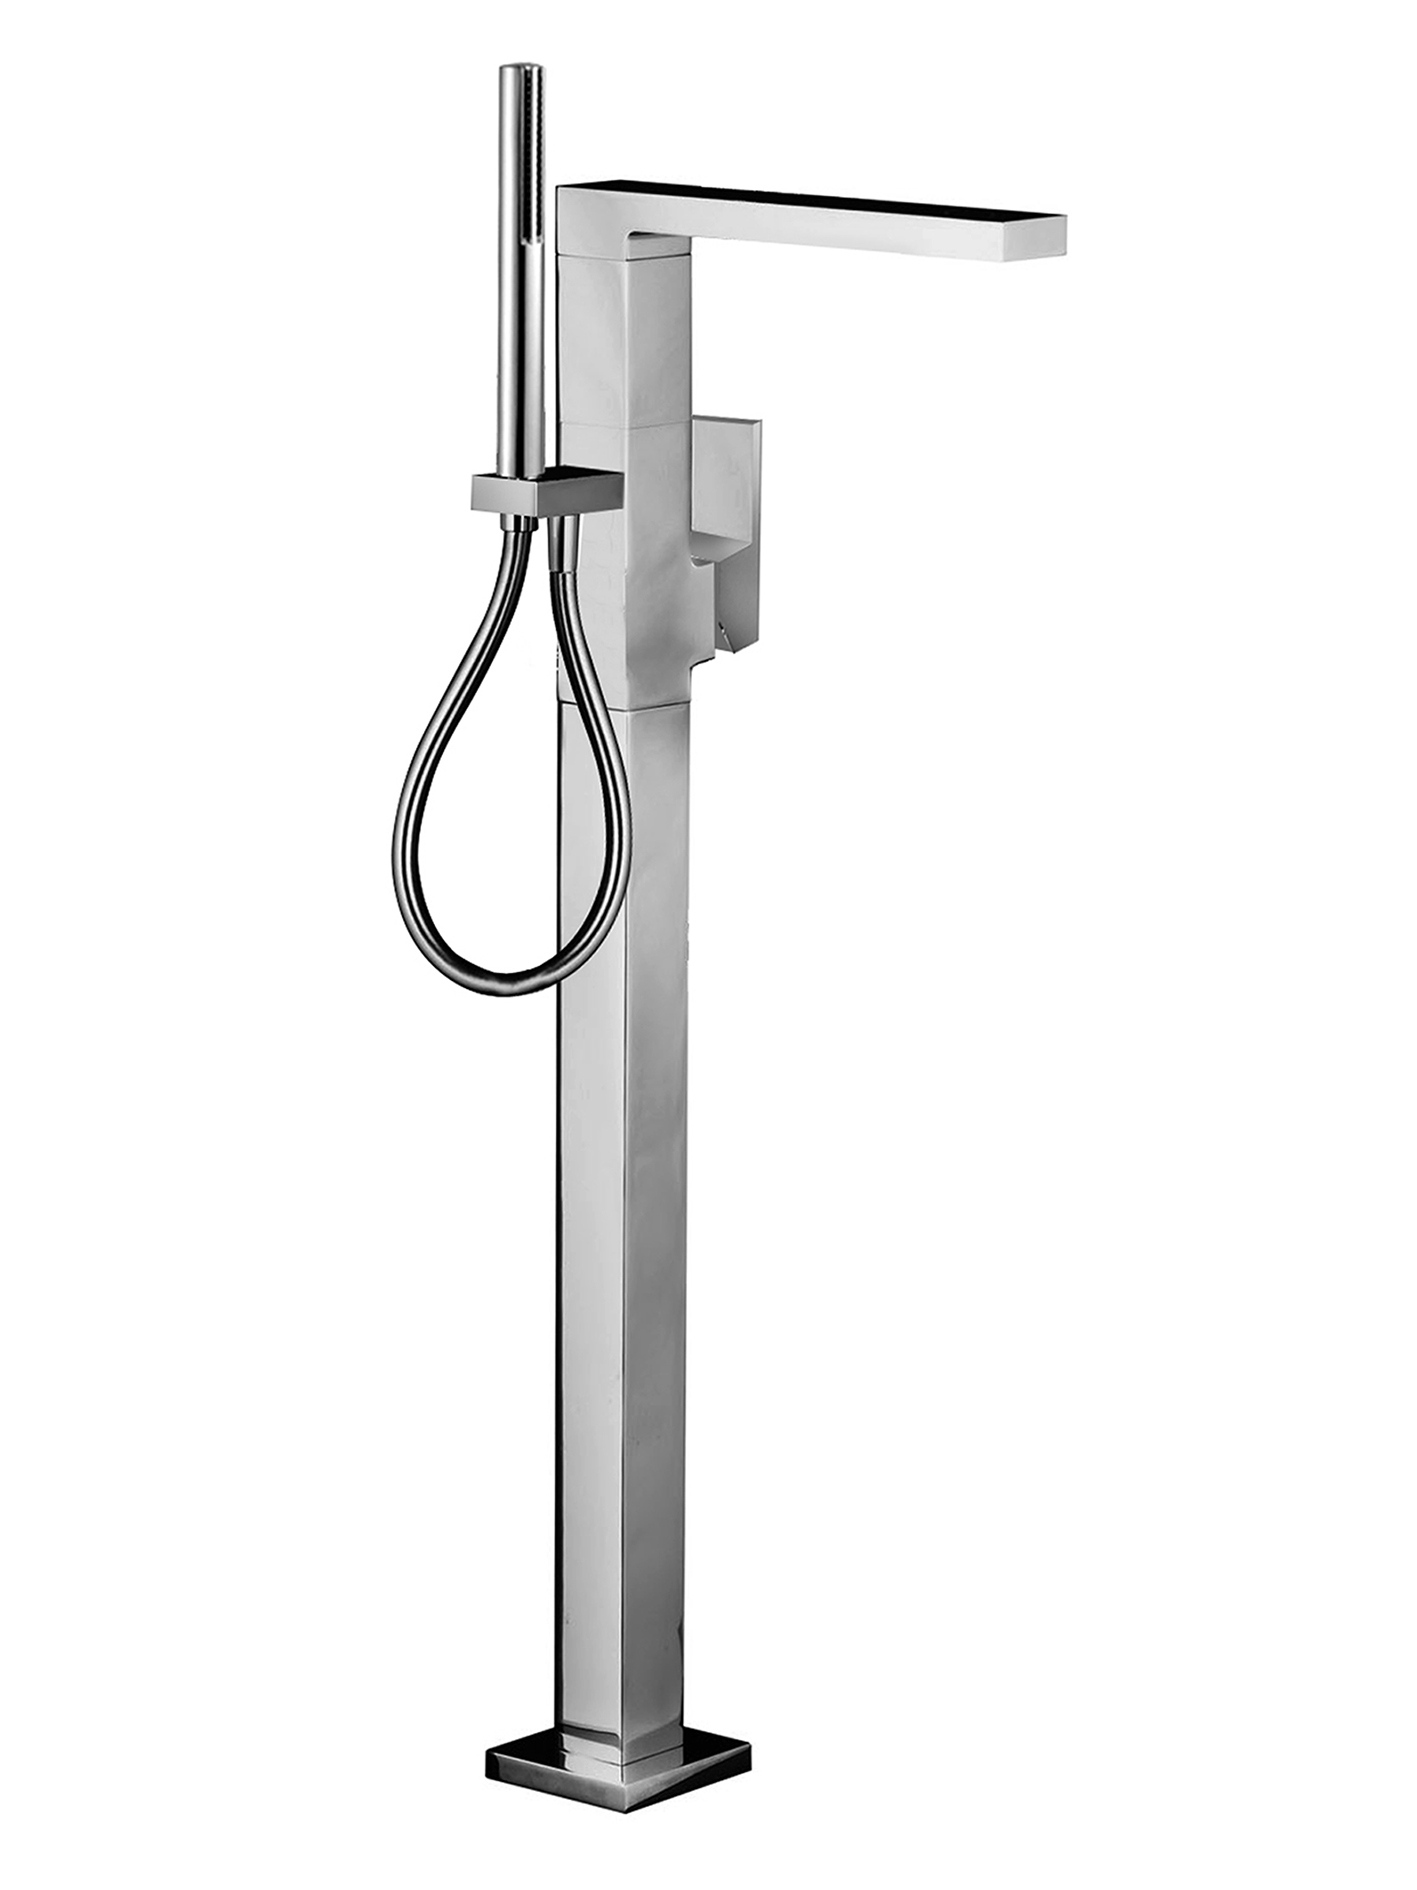 Fantini 3380SBU+3380AU Plano Floor-Mount Single-Control Tub High flow Filler